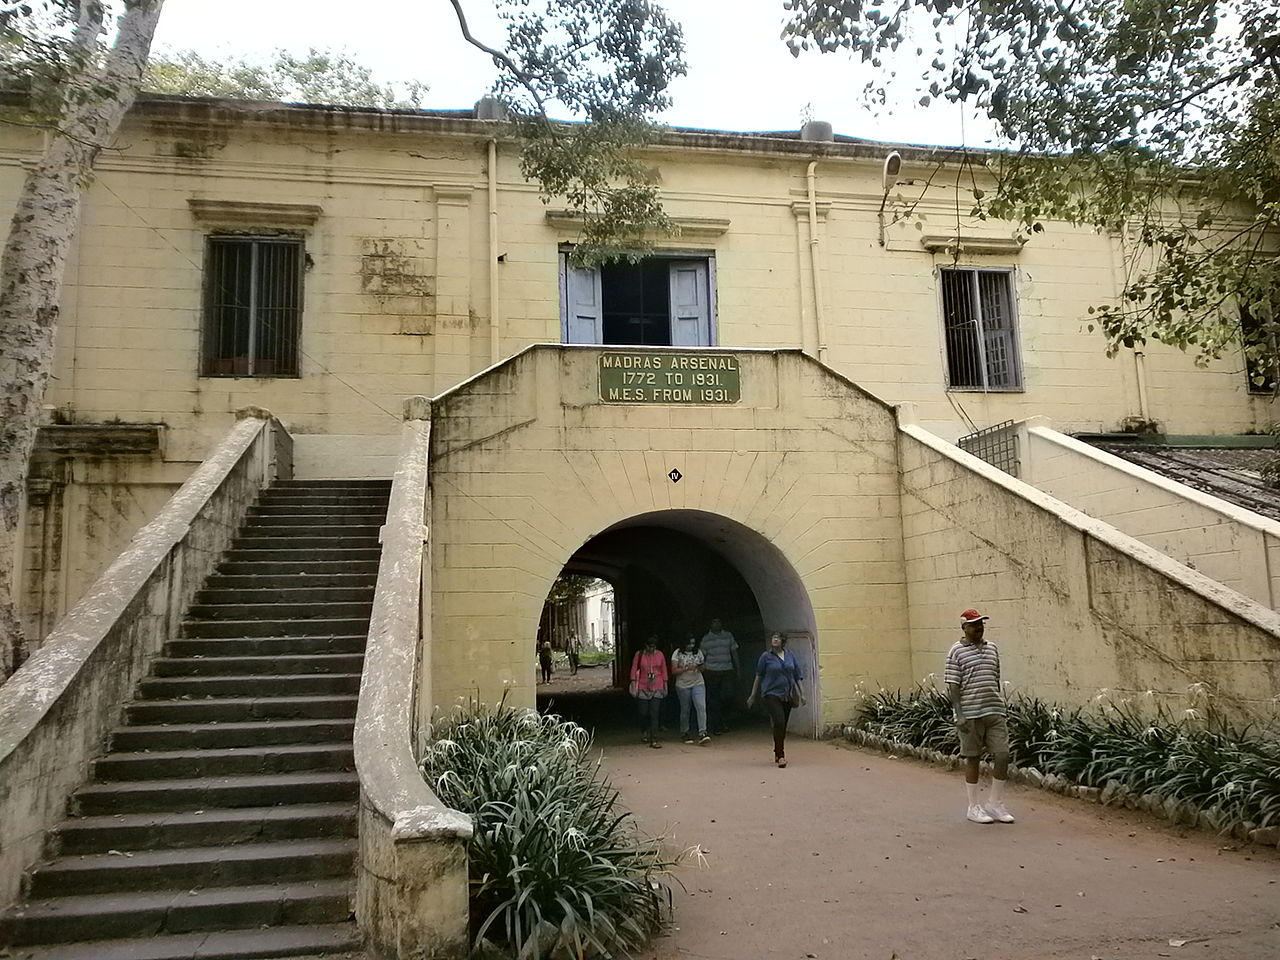 What's Inside the Fort St. George?